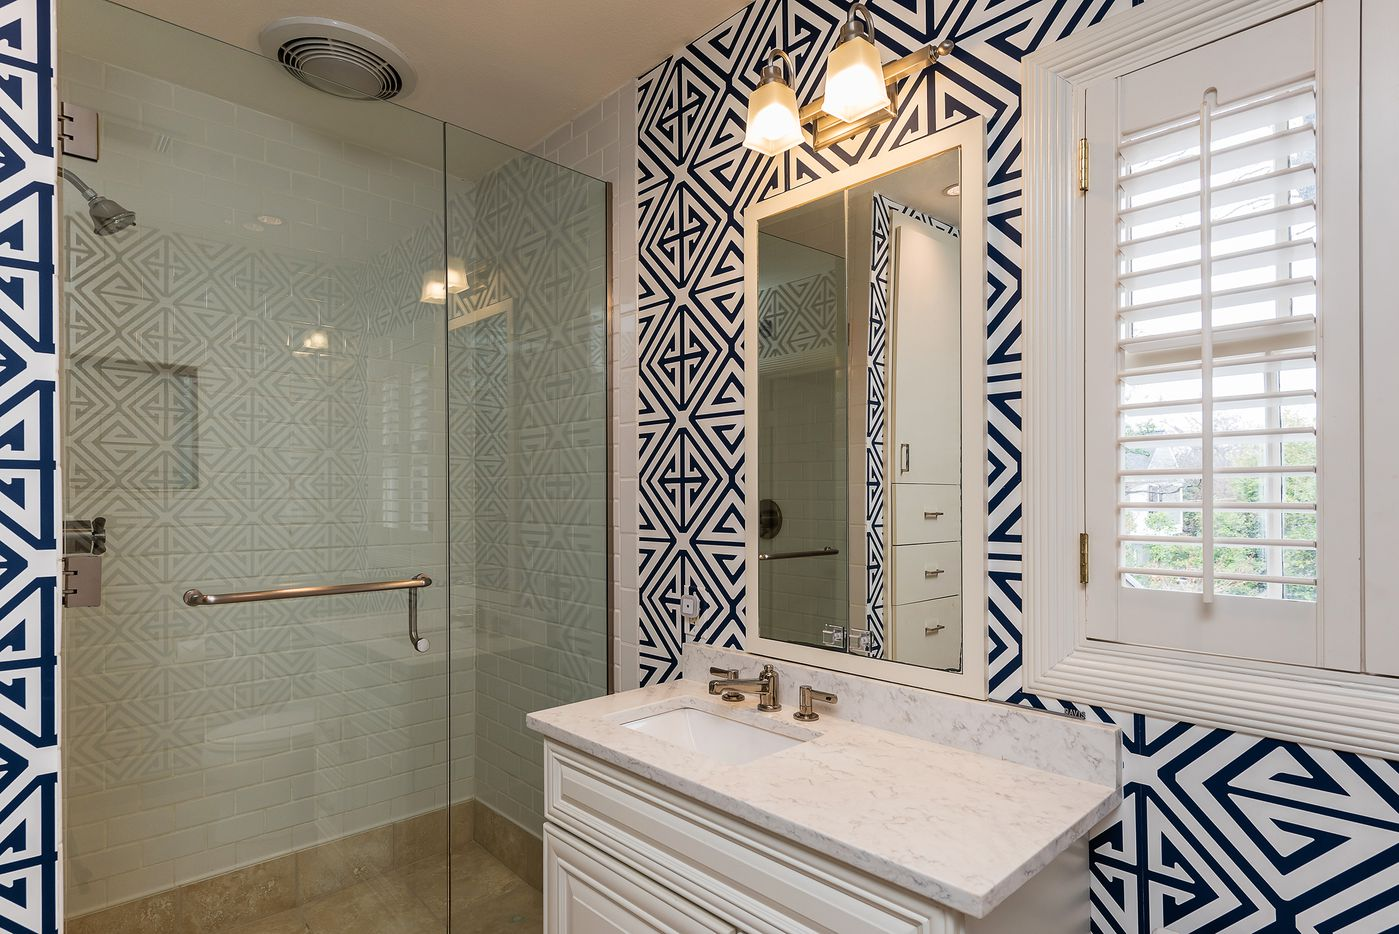 Bathroom with printed accents at 5845 Lupton Drive.